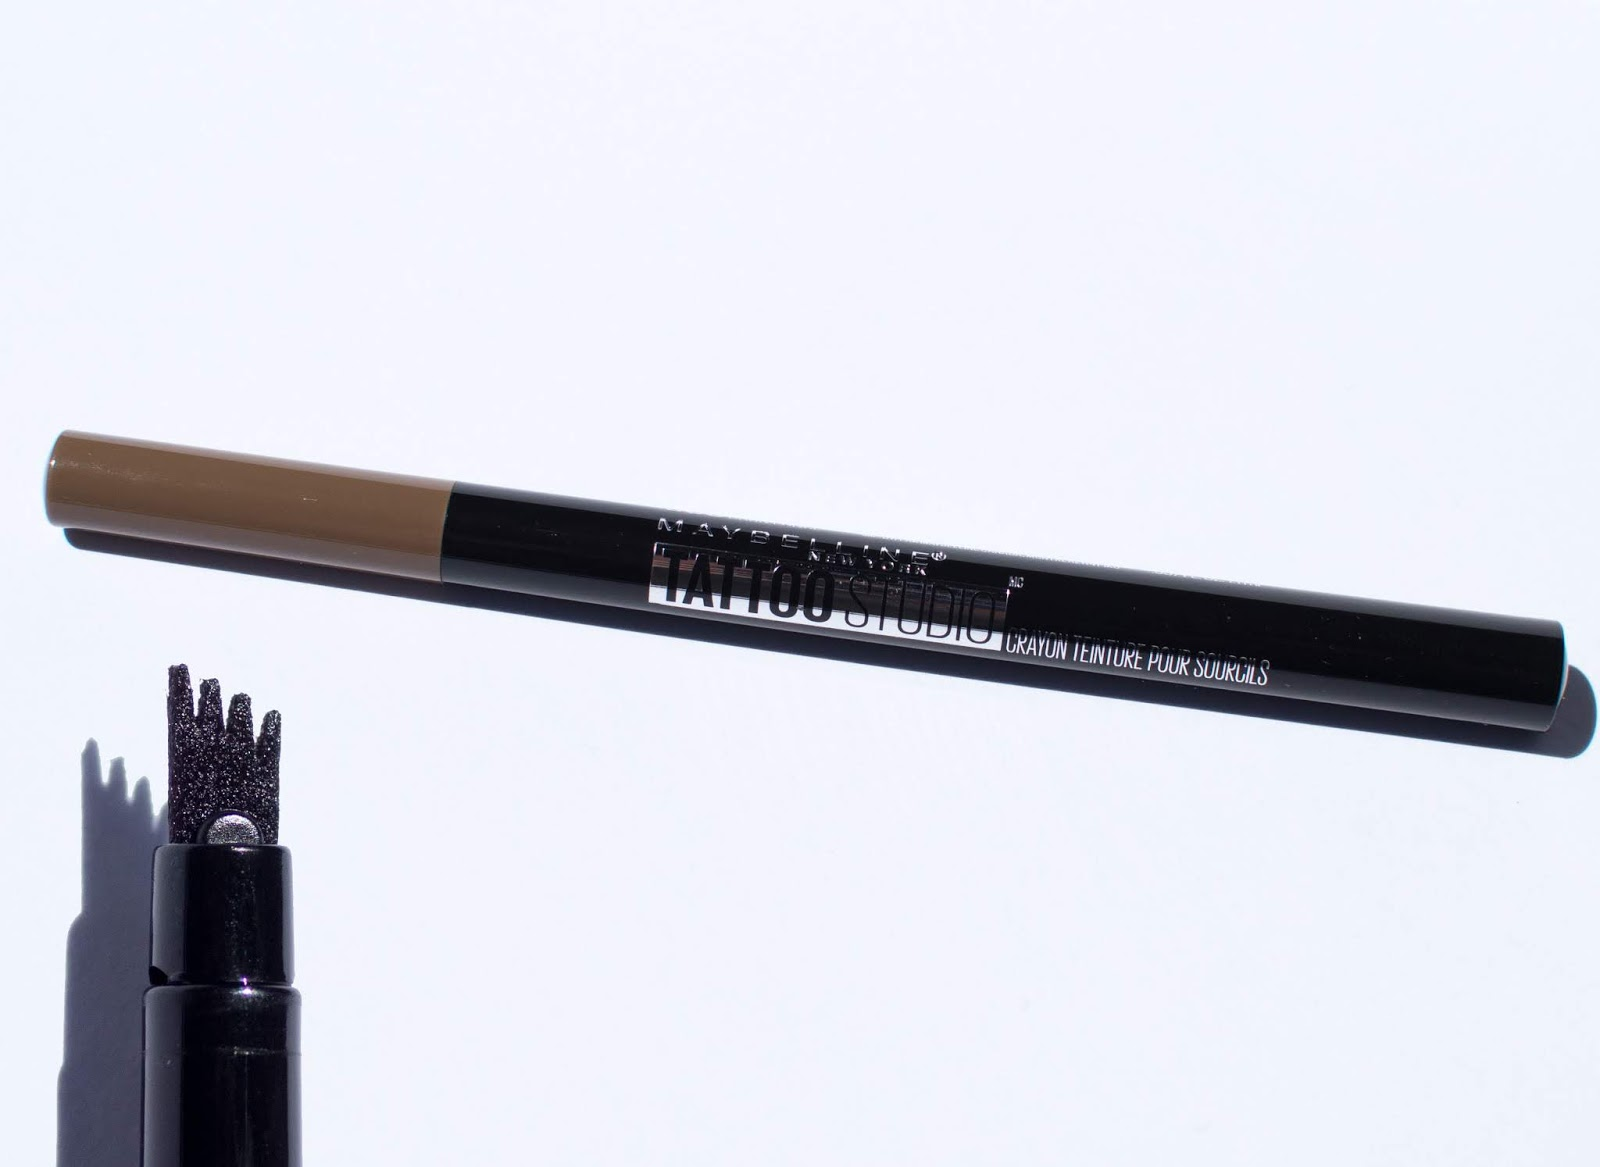 Maybelline Tattoostudio Brow Tint Pen Makeup Review Is It The